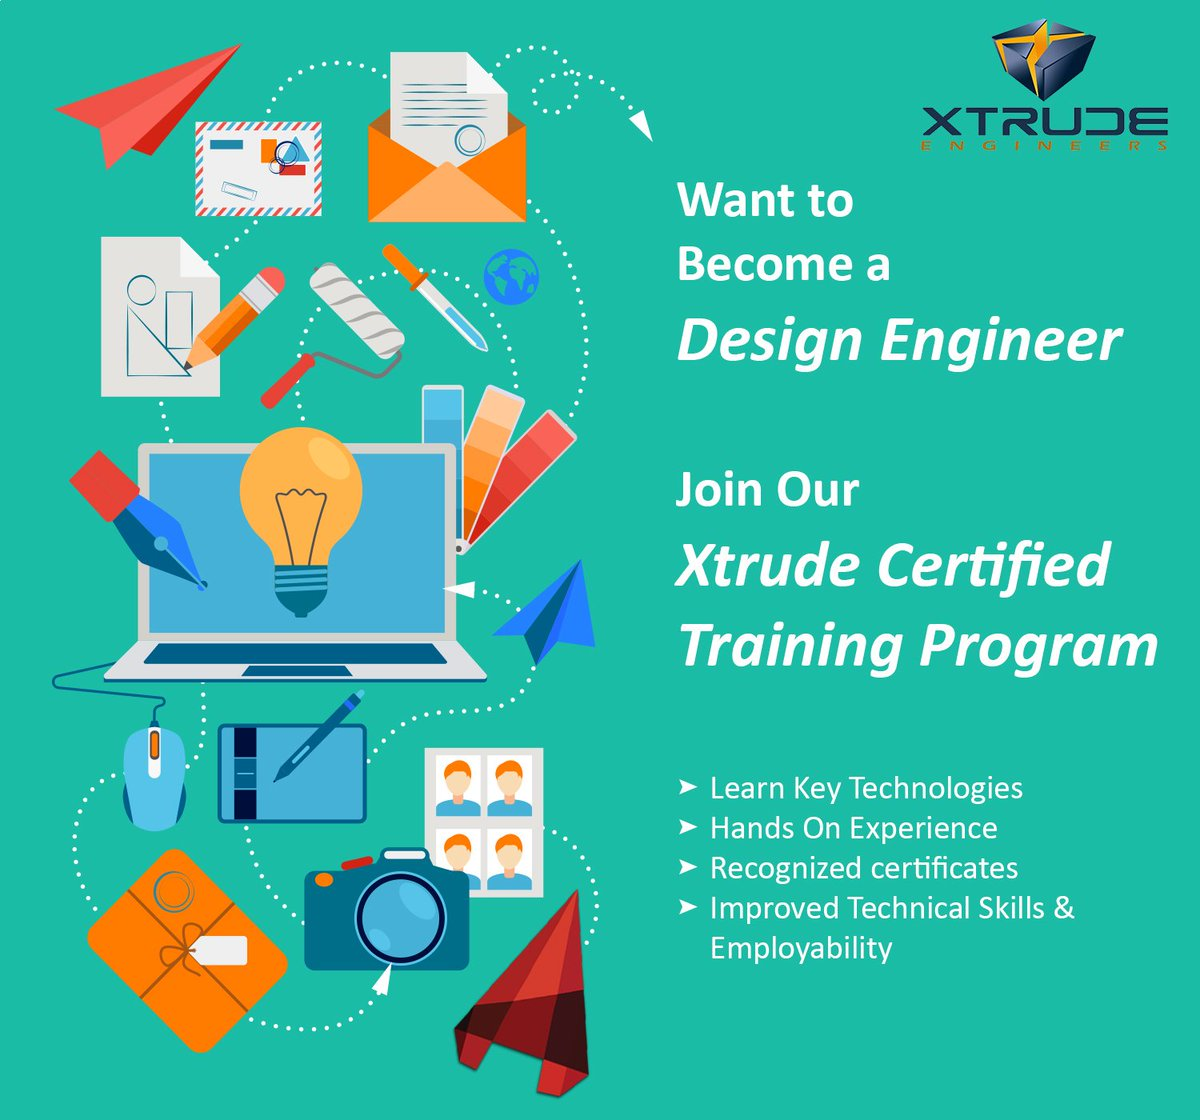 Xtrude Engineers On Twitter Want To Become A Certified Design Engineer Join Xtrude Certified Training Program And Become A Design Engineer Https T Co Wswtht3lzg Training Institute Cad Cam Cad Cam Training Https T Co Talvvfkzyb